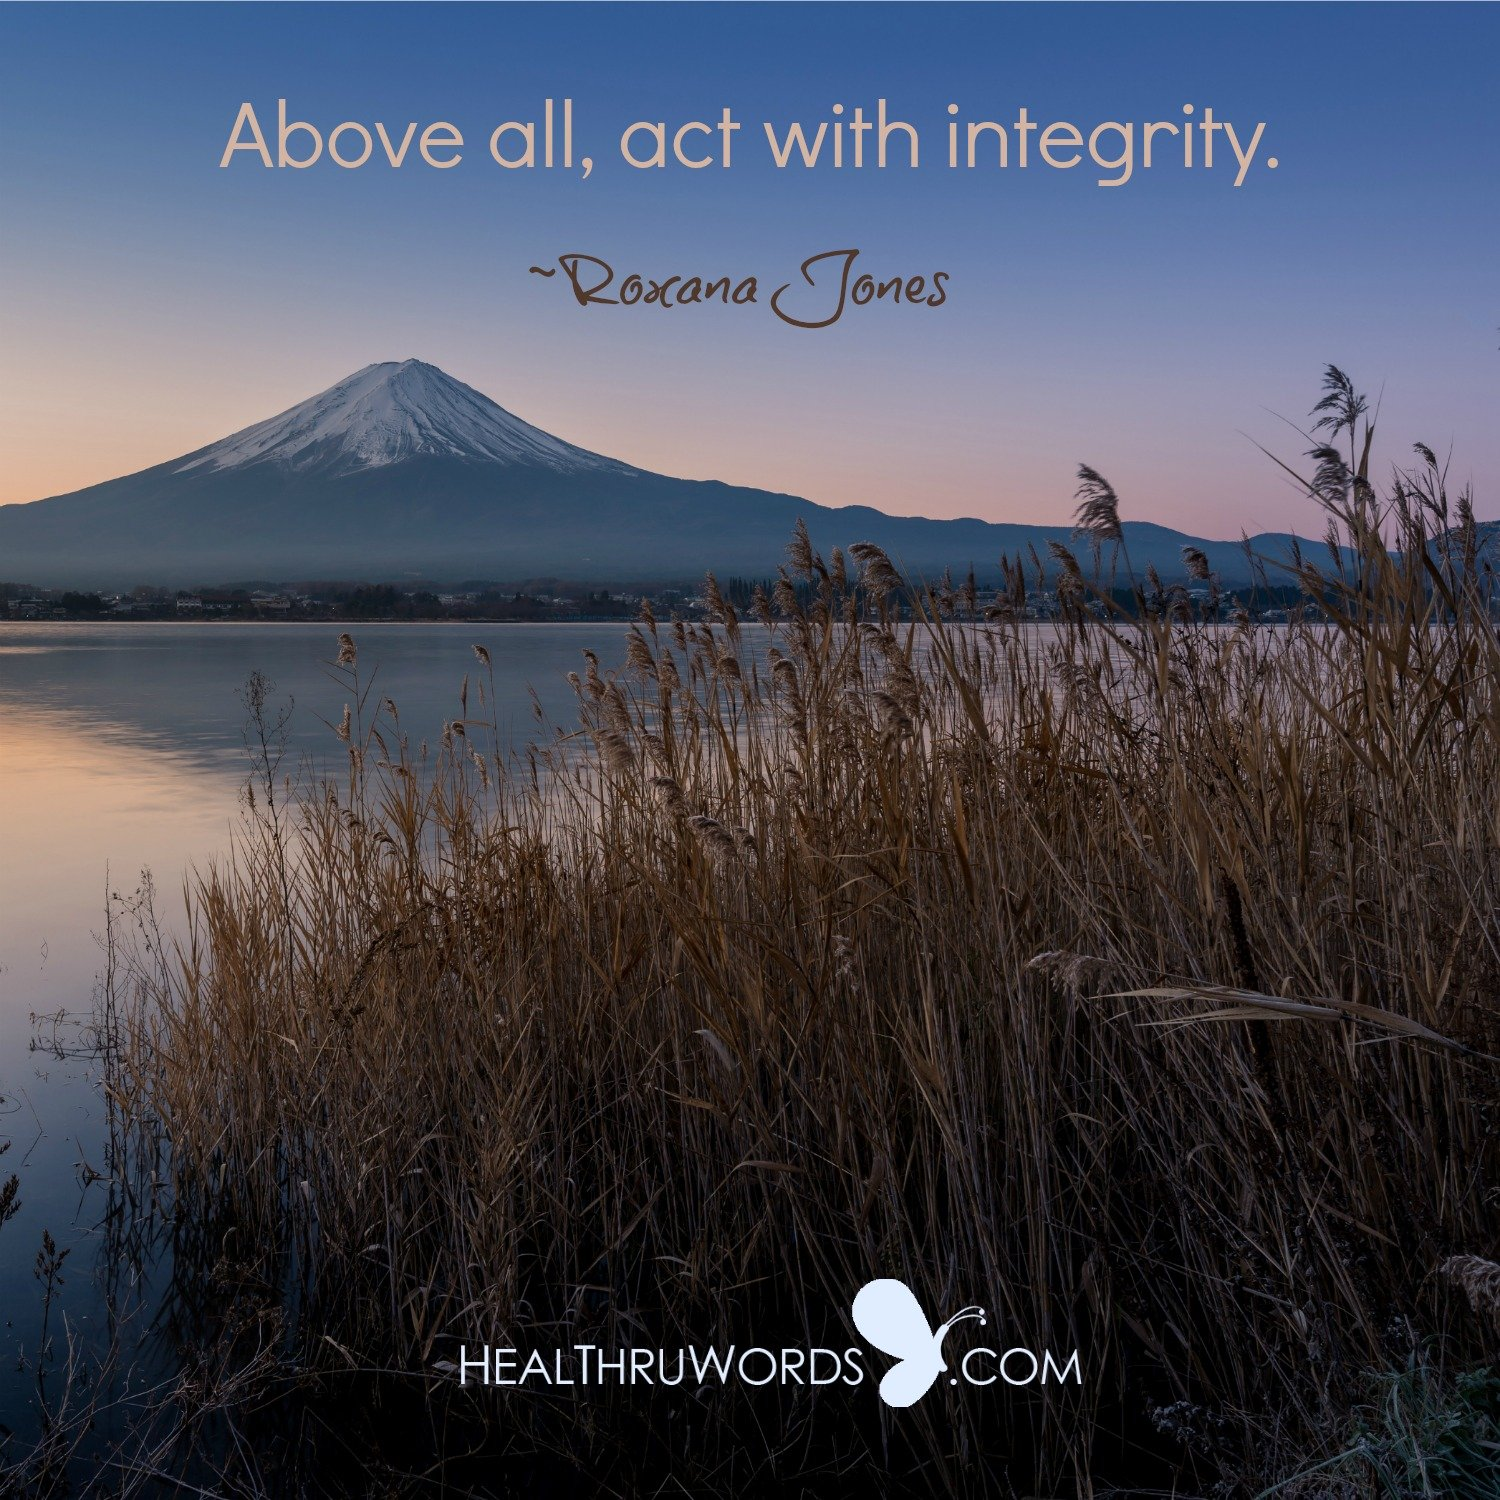 Inspirational Image: Integrity comes First